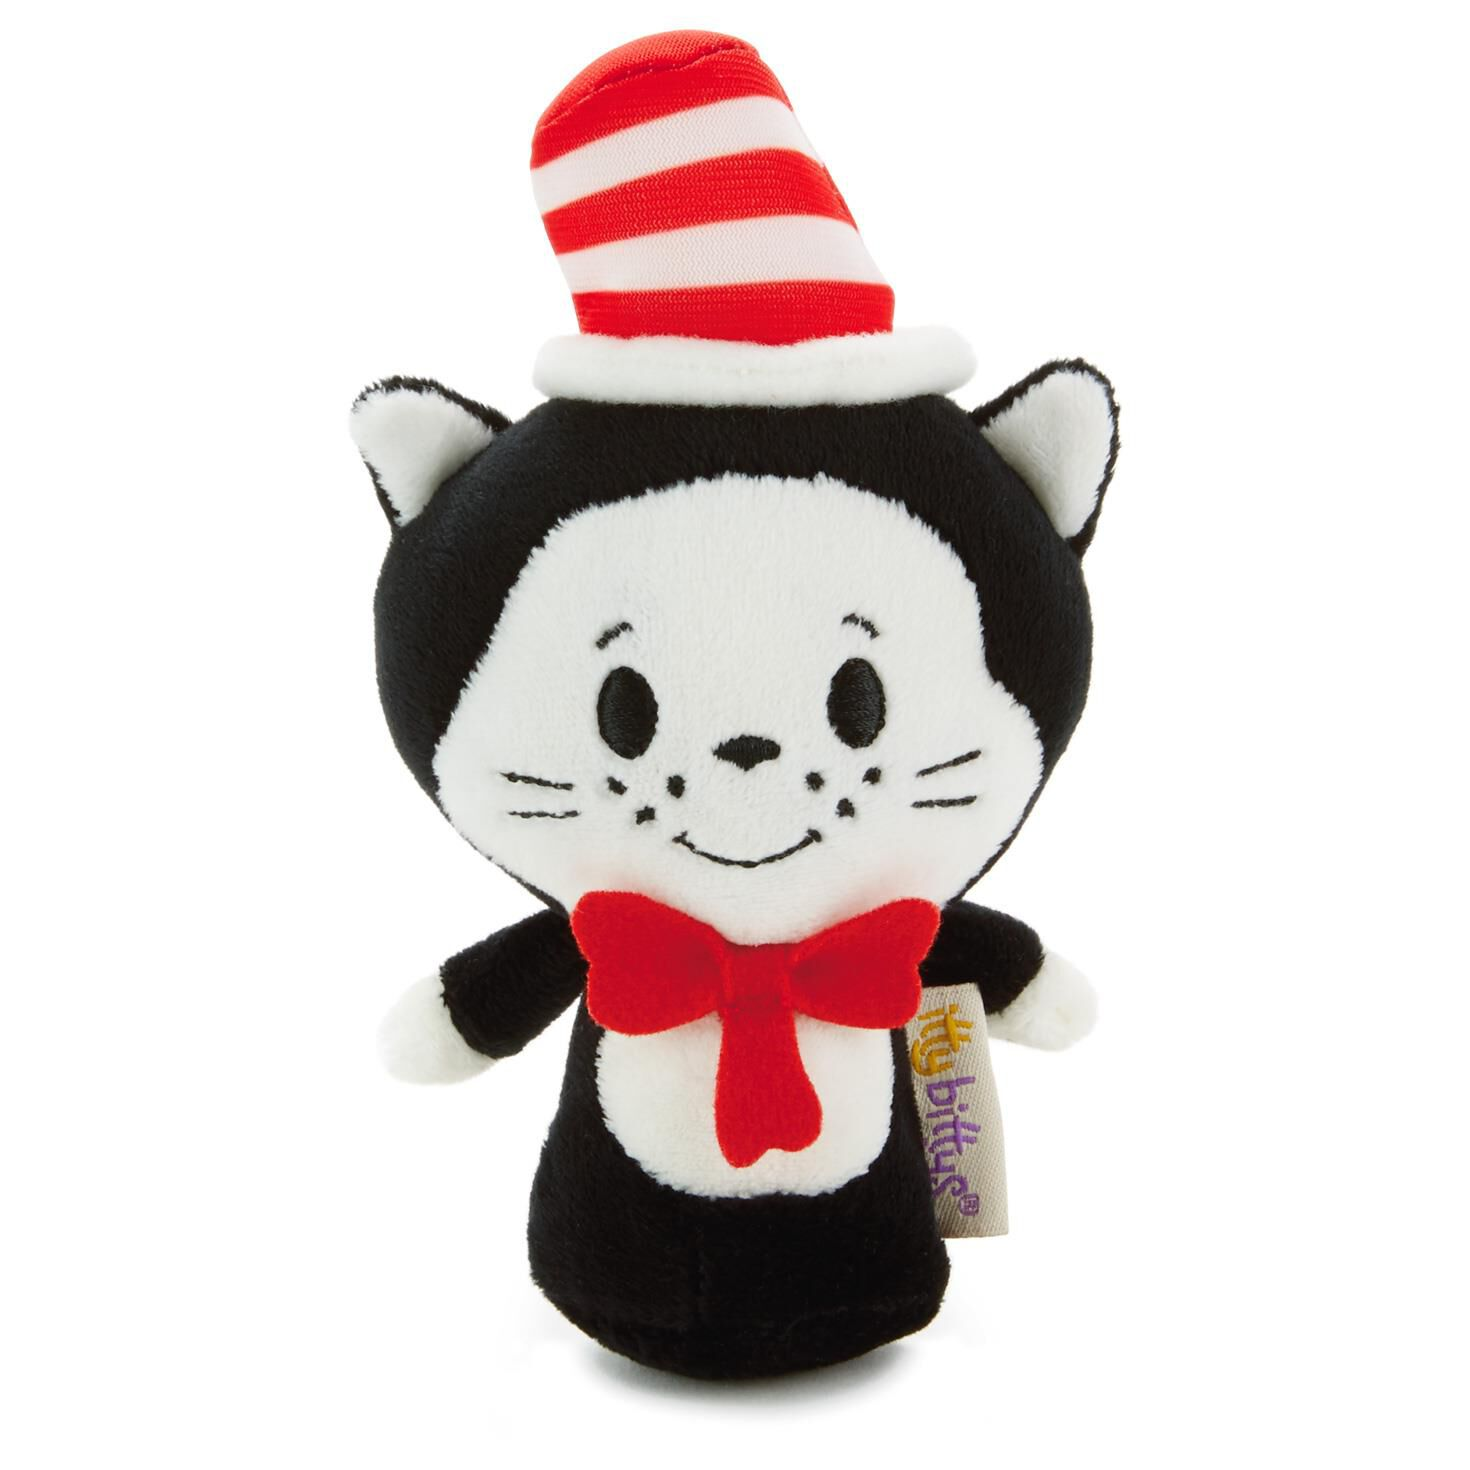 Cat in the hat ornaments - Itty Bittys Cat In The Hat Stuffed Animal Limited Edition Itty Bittys Hallmark